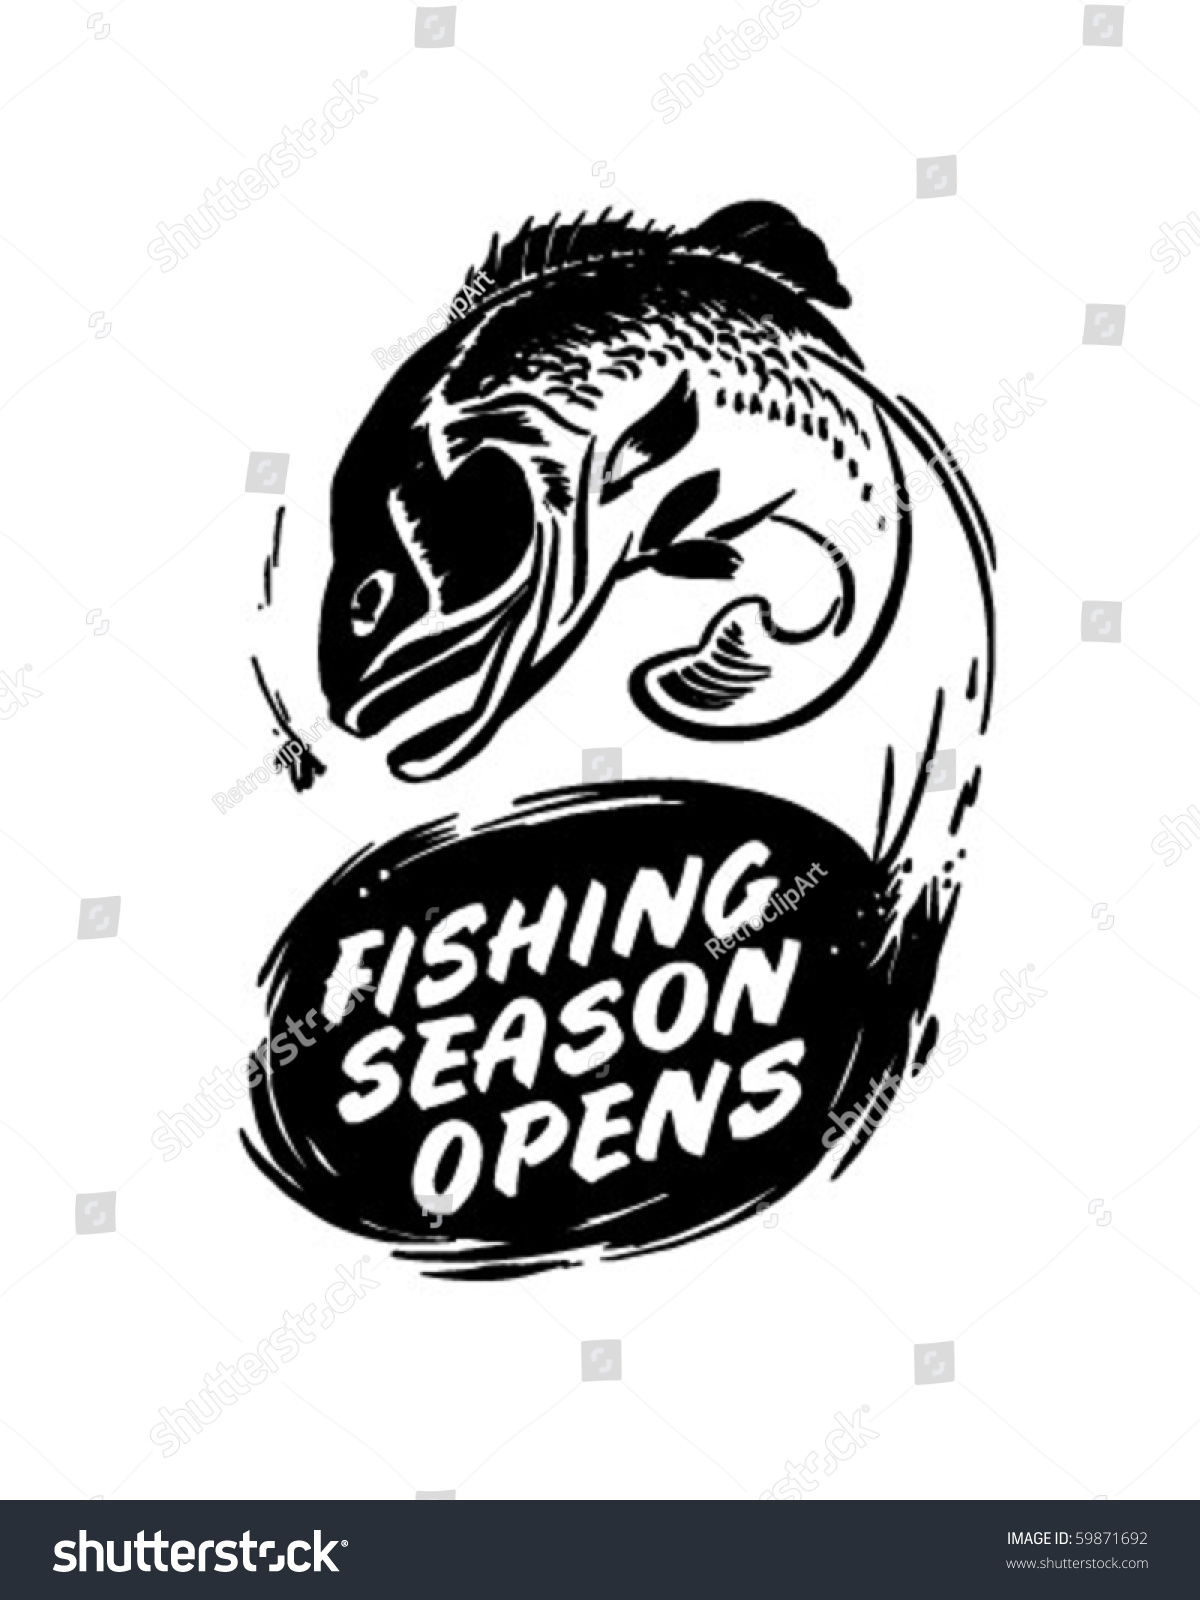 Fishing season opens header retro clip stock vector for When is fishing season